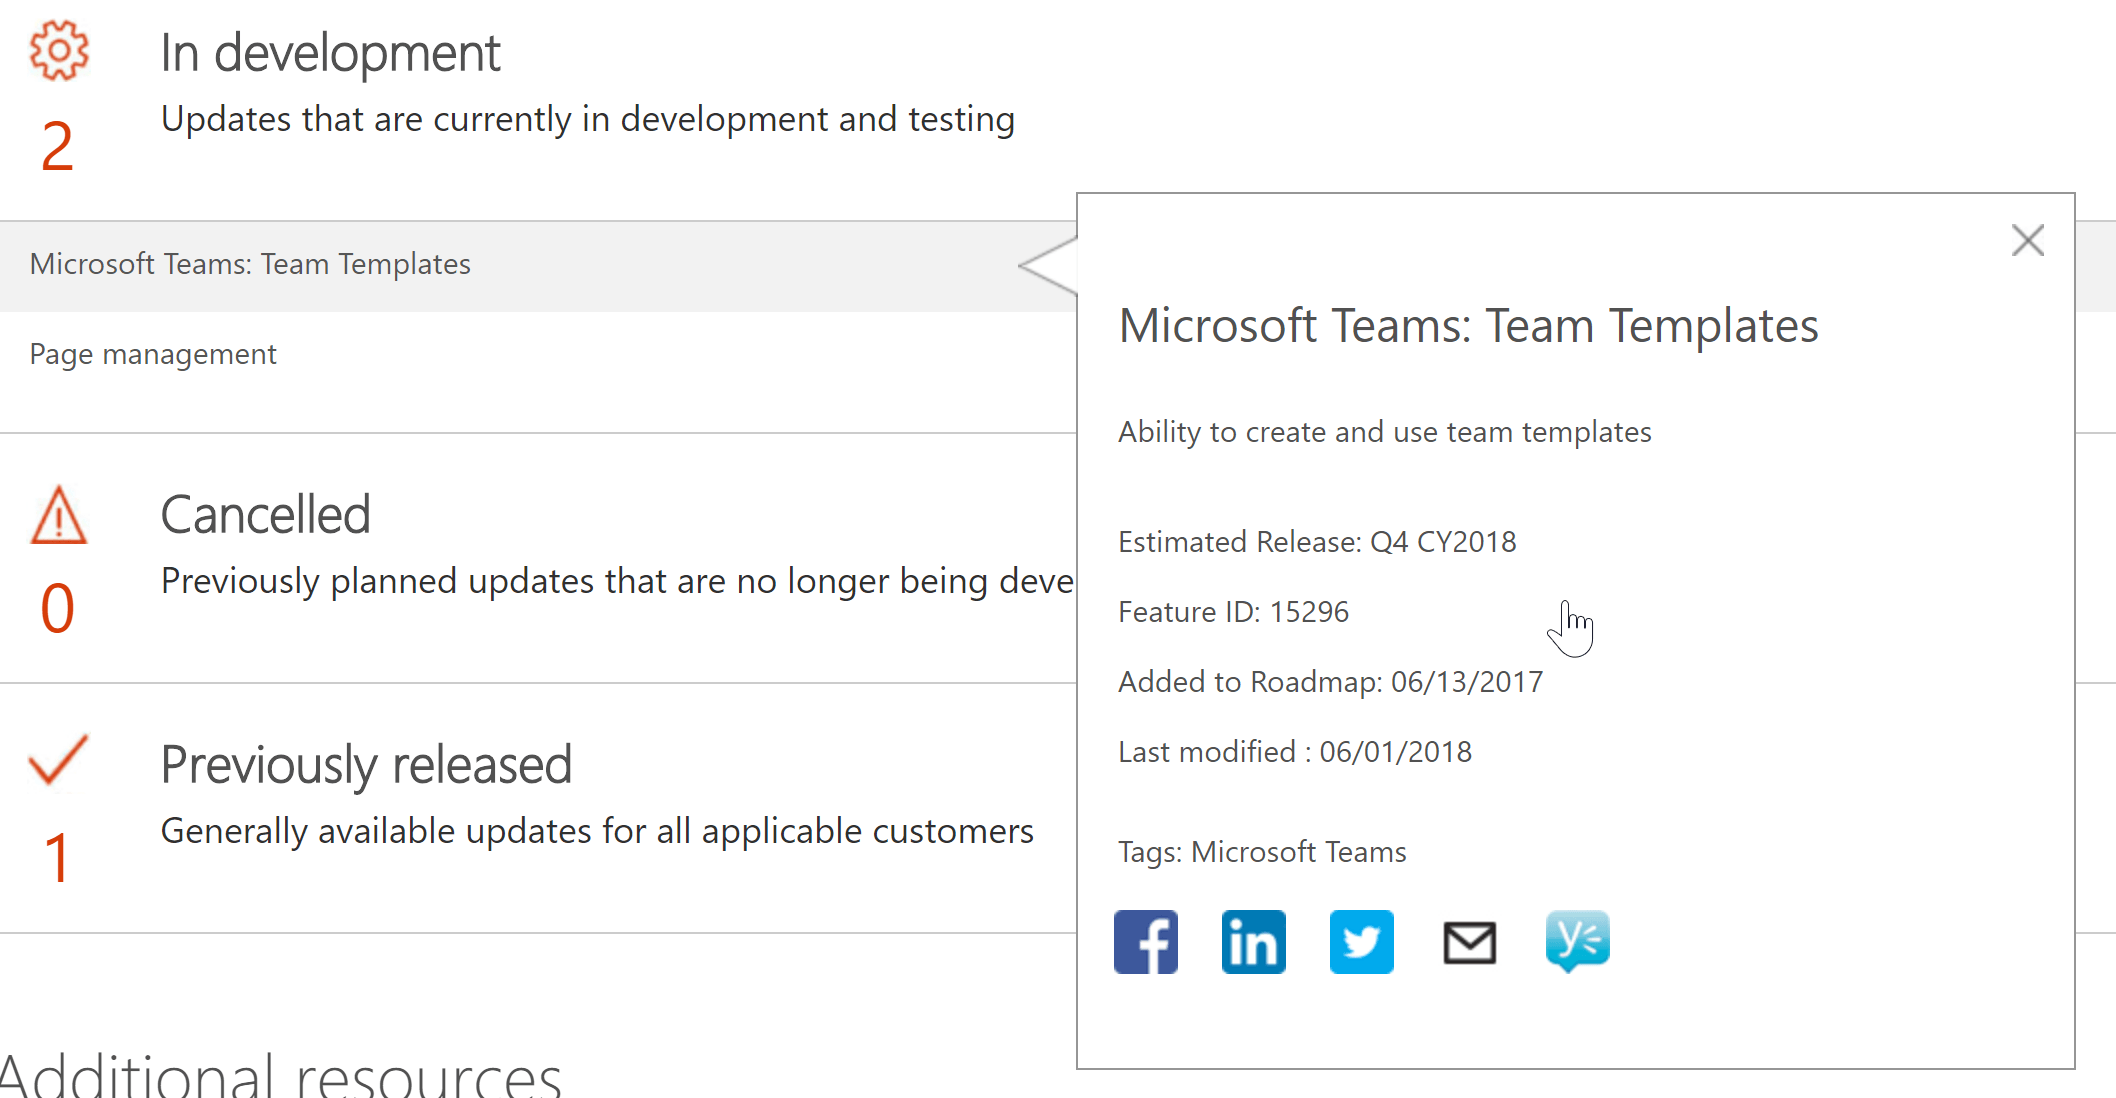 This Is A Feature We Have Heard Microsoft Previously Signal As Templates For Teams And Currently Listed On Their Public Roadmap Release In Q4 2018